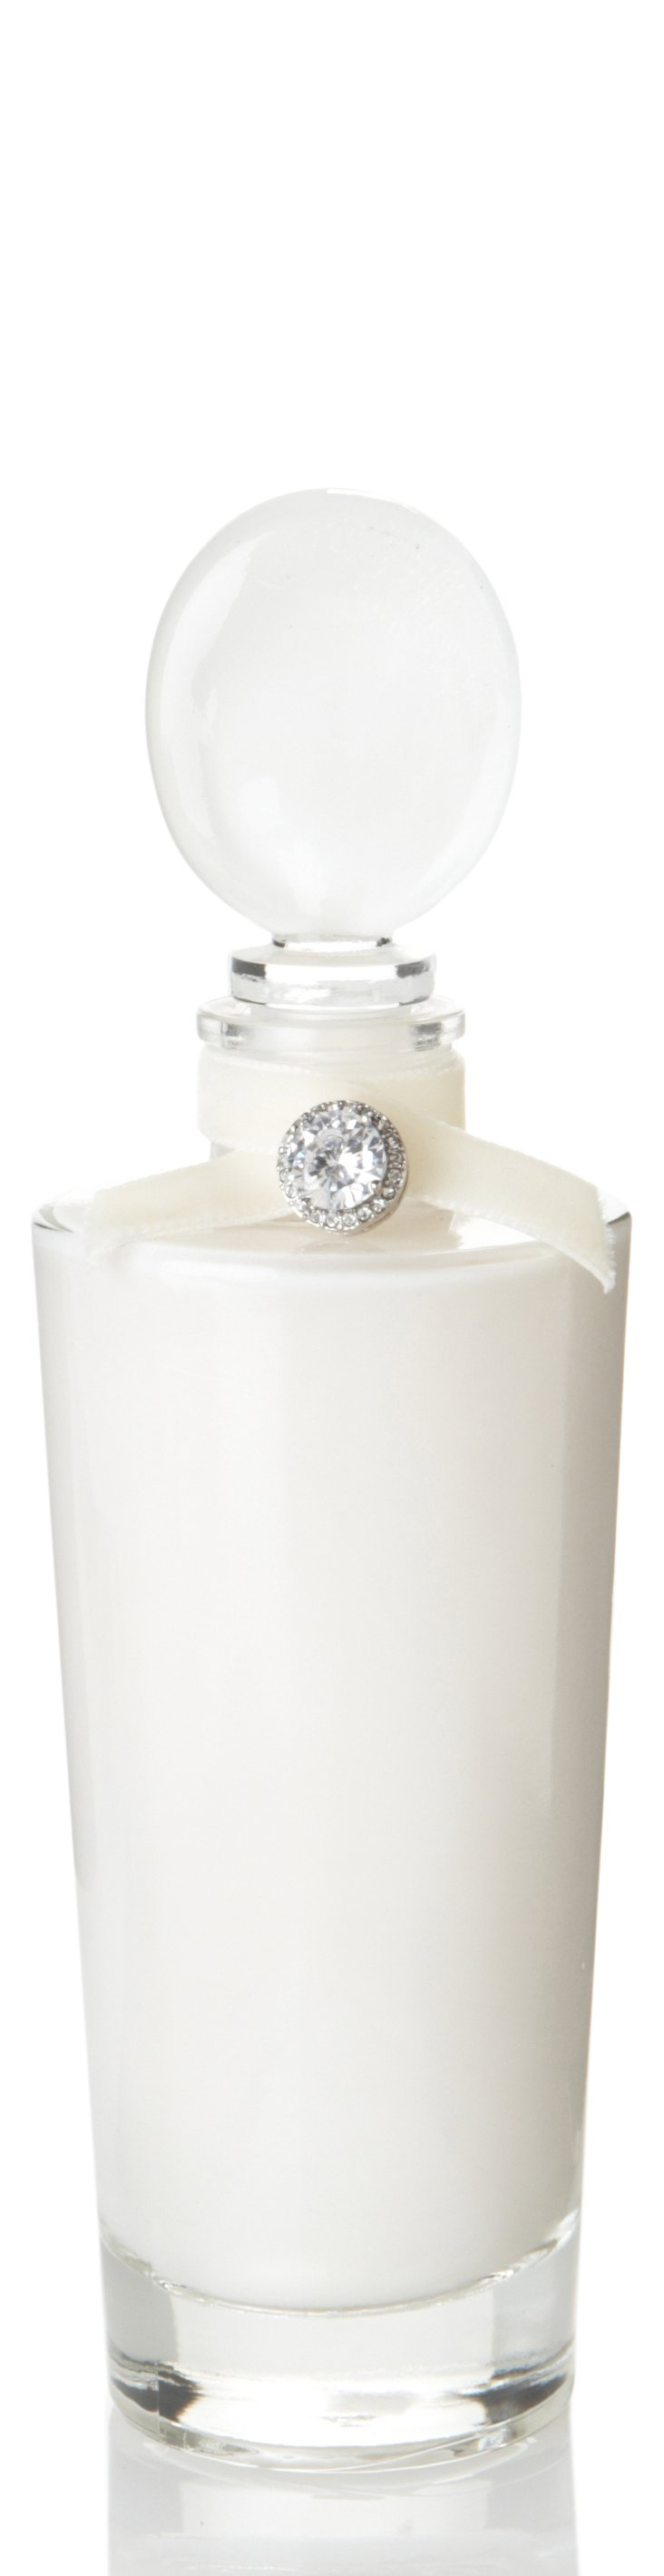 Tryst Lotion in Glass Decanter